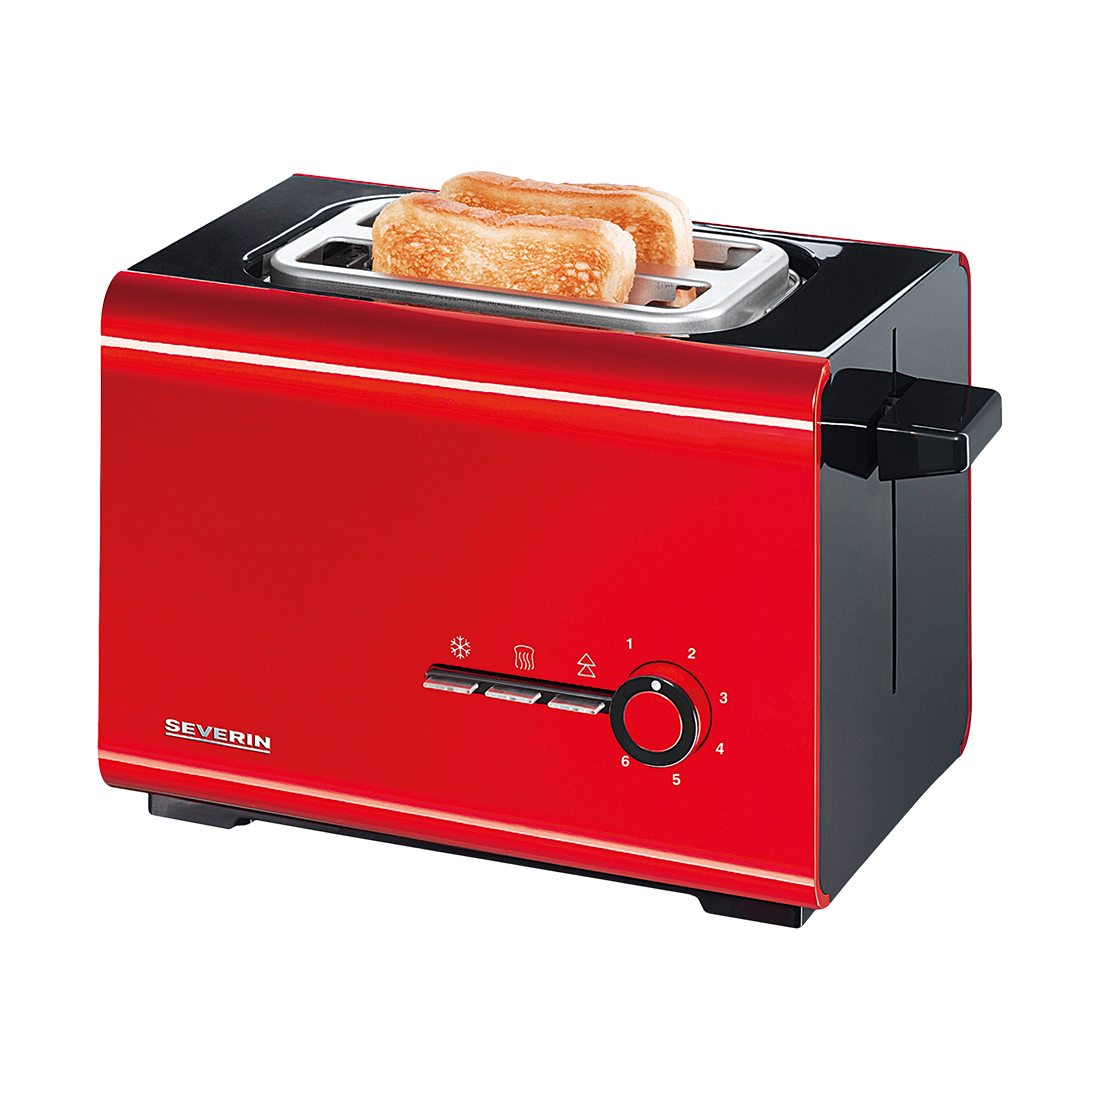 Toaster Style AT 2507 - Kunststoff Schwarz, Rot,